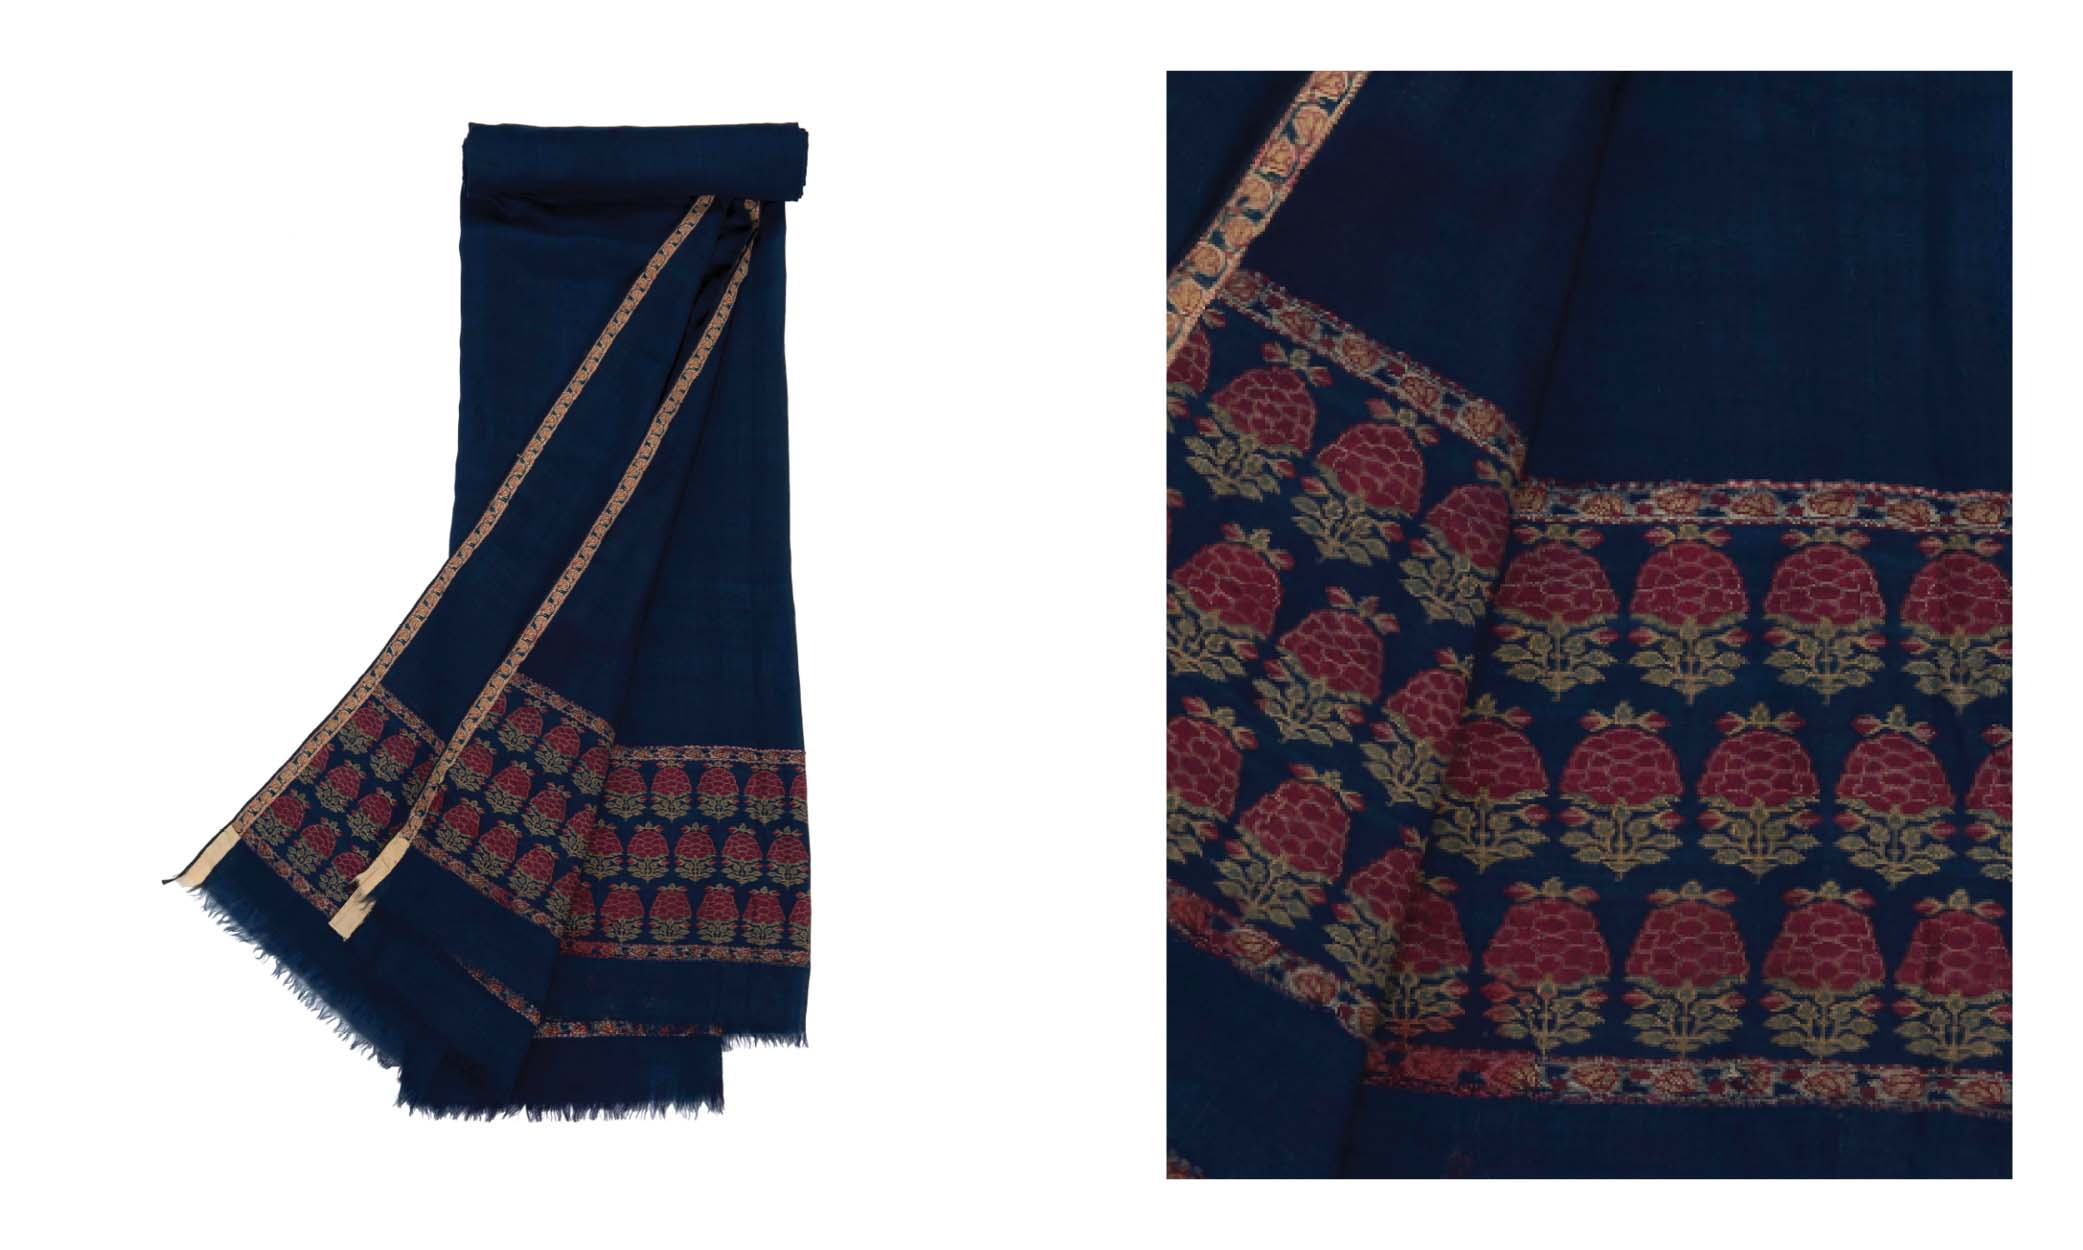 Lot 13: LONG SHAWL (DOCHALLA). NORTH INDIA, 1750-1760. Estimate: GBP 4,000 - GBP 6,000. Price Realised: GBP 35,000